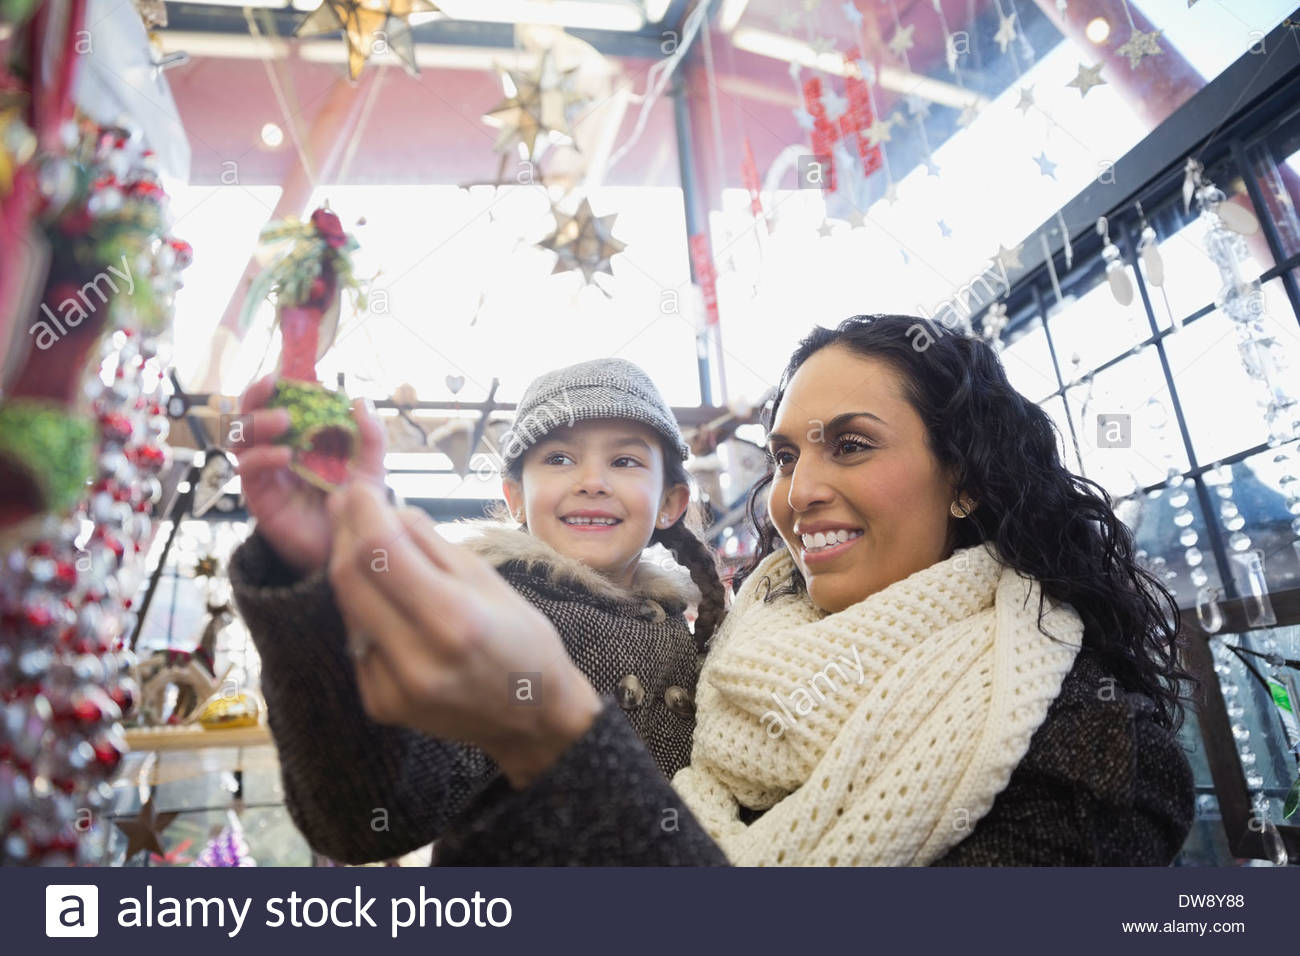 Mother and daughter buying Christmas ornaments in store - Stock Image